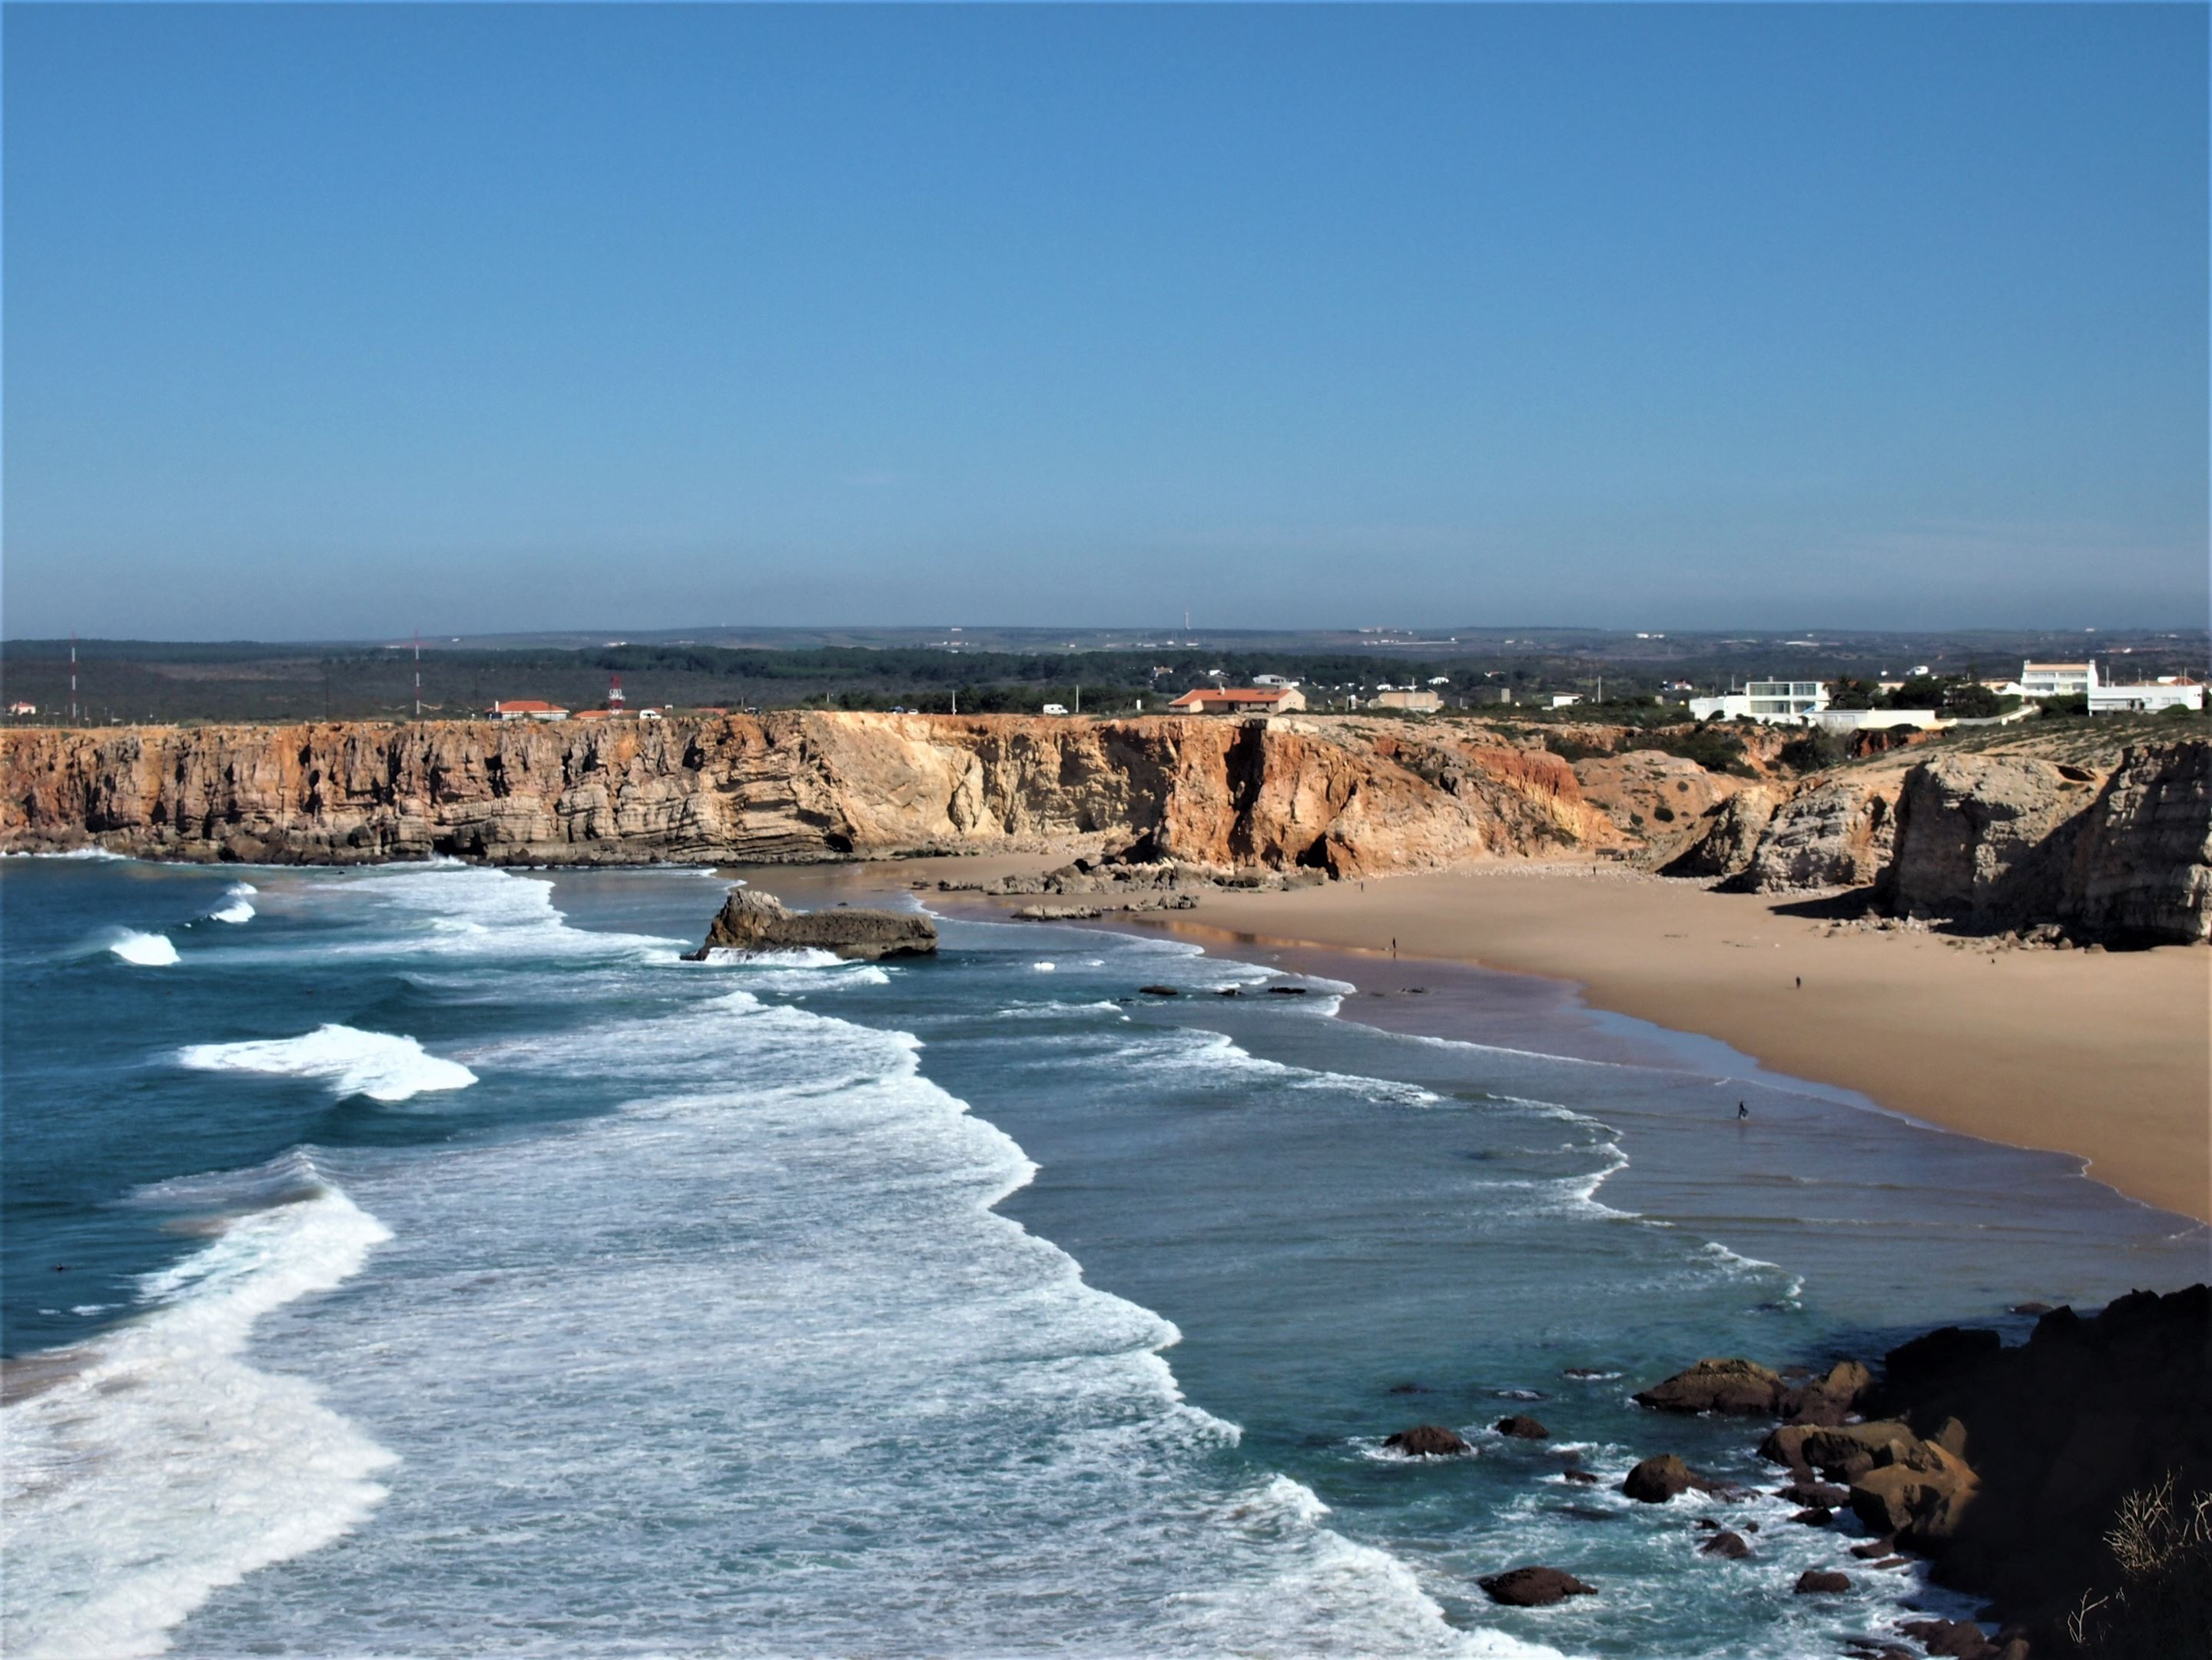 The view from the cliffs at Sagres, with Praia do Tonel (Tonel beach) close by